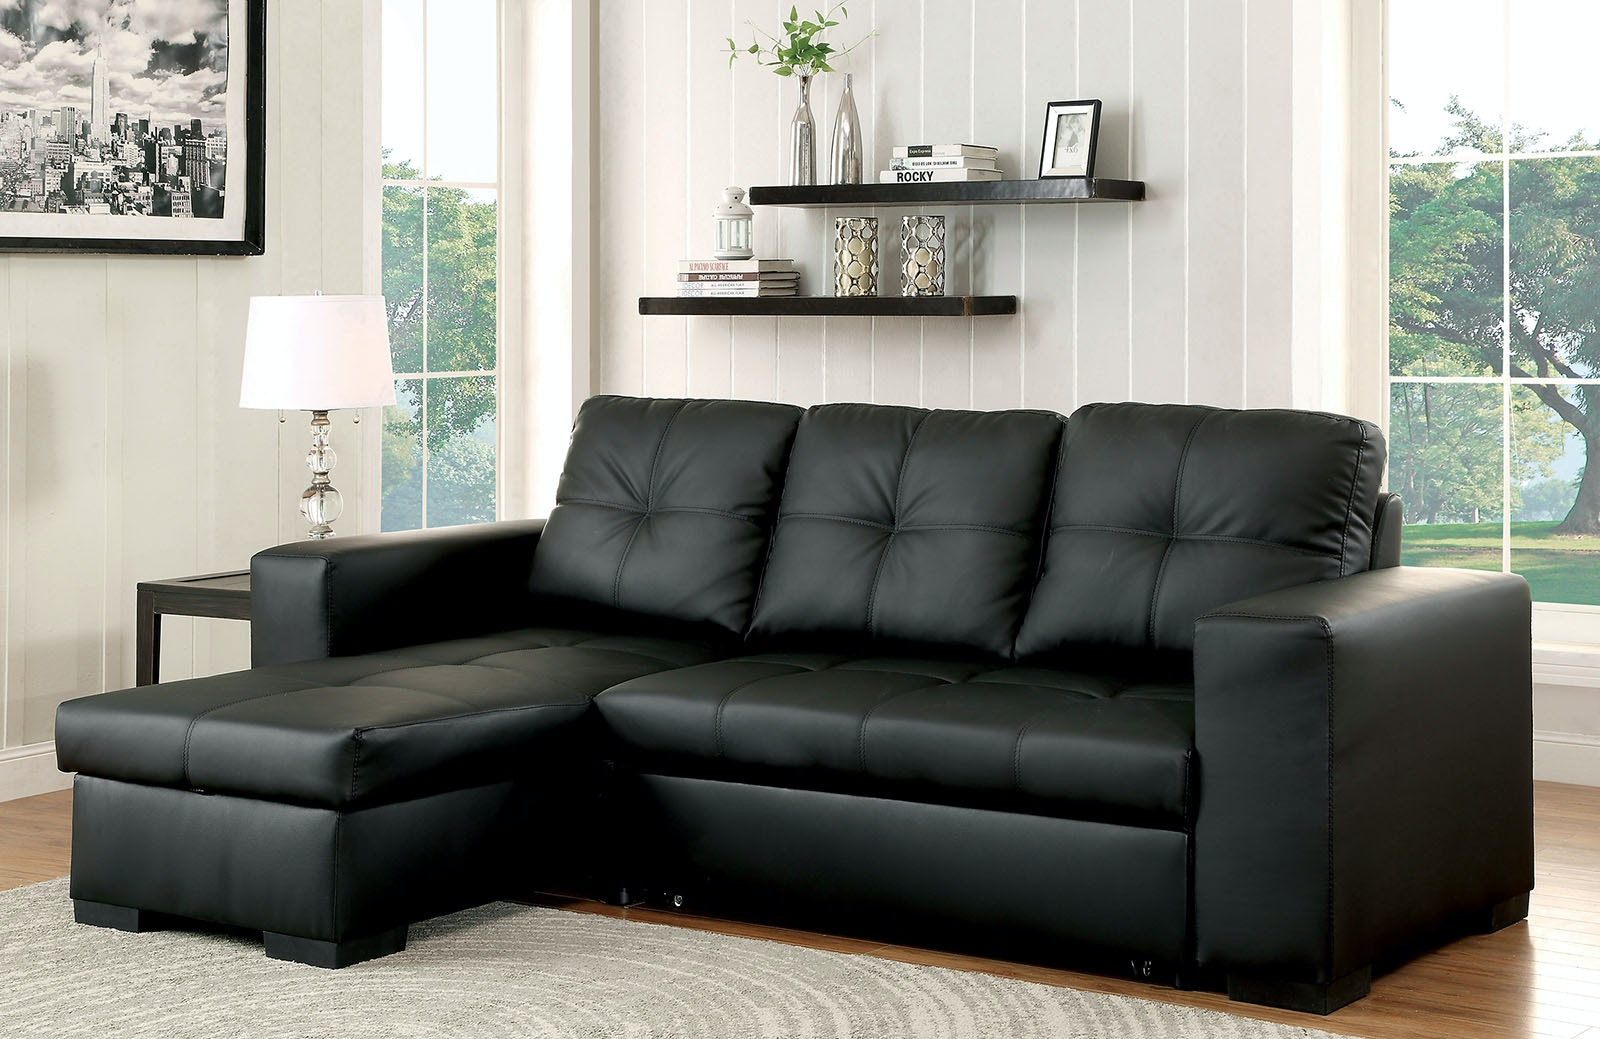 Furniture Of America Living Room Sectional Black Bonded Leather